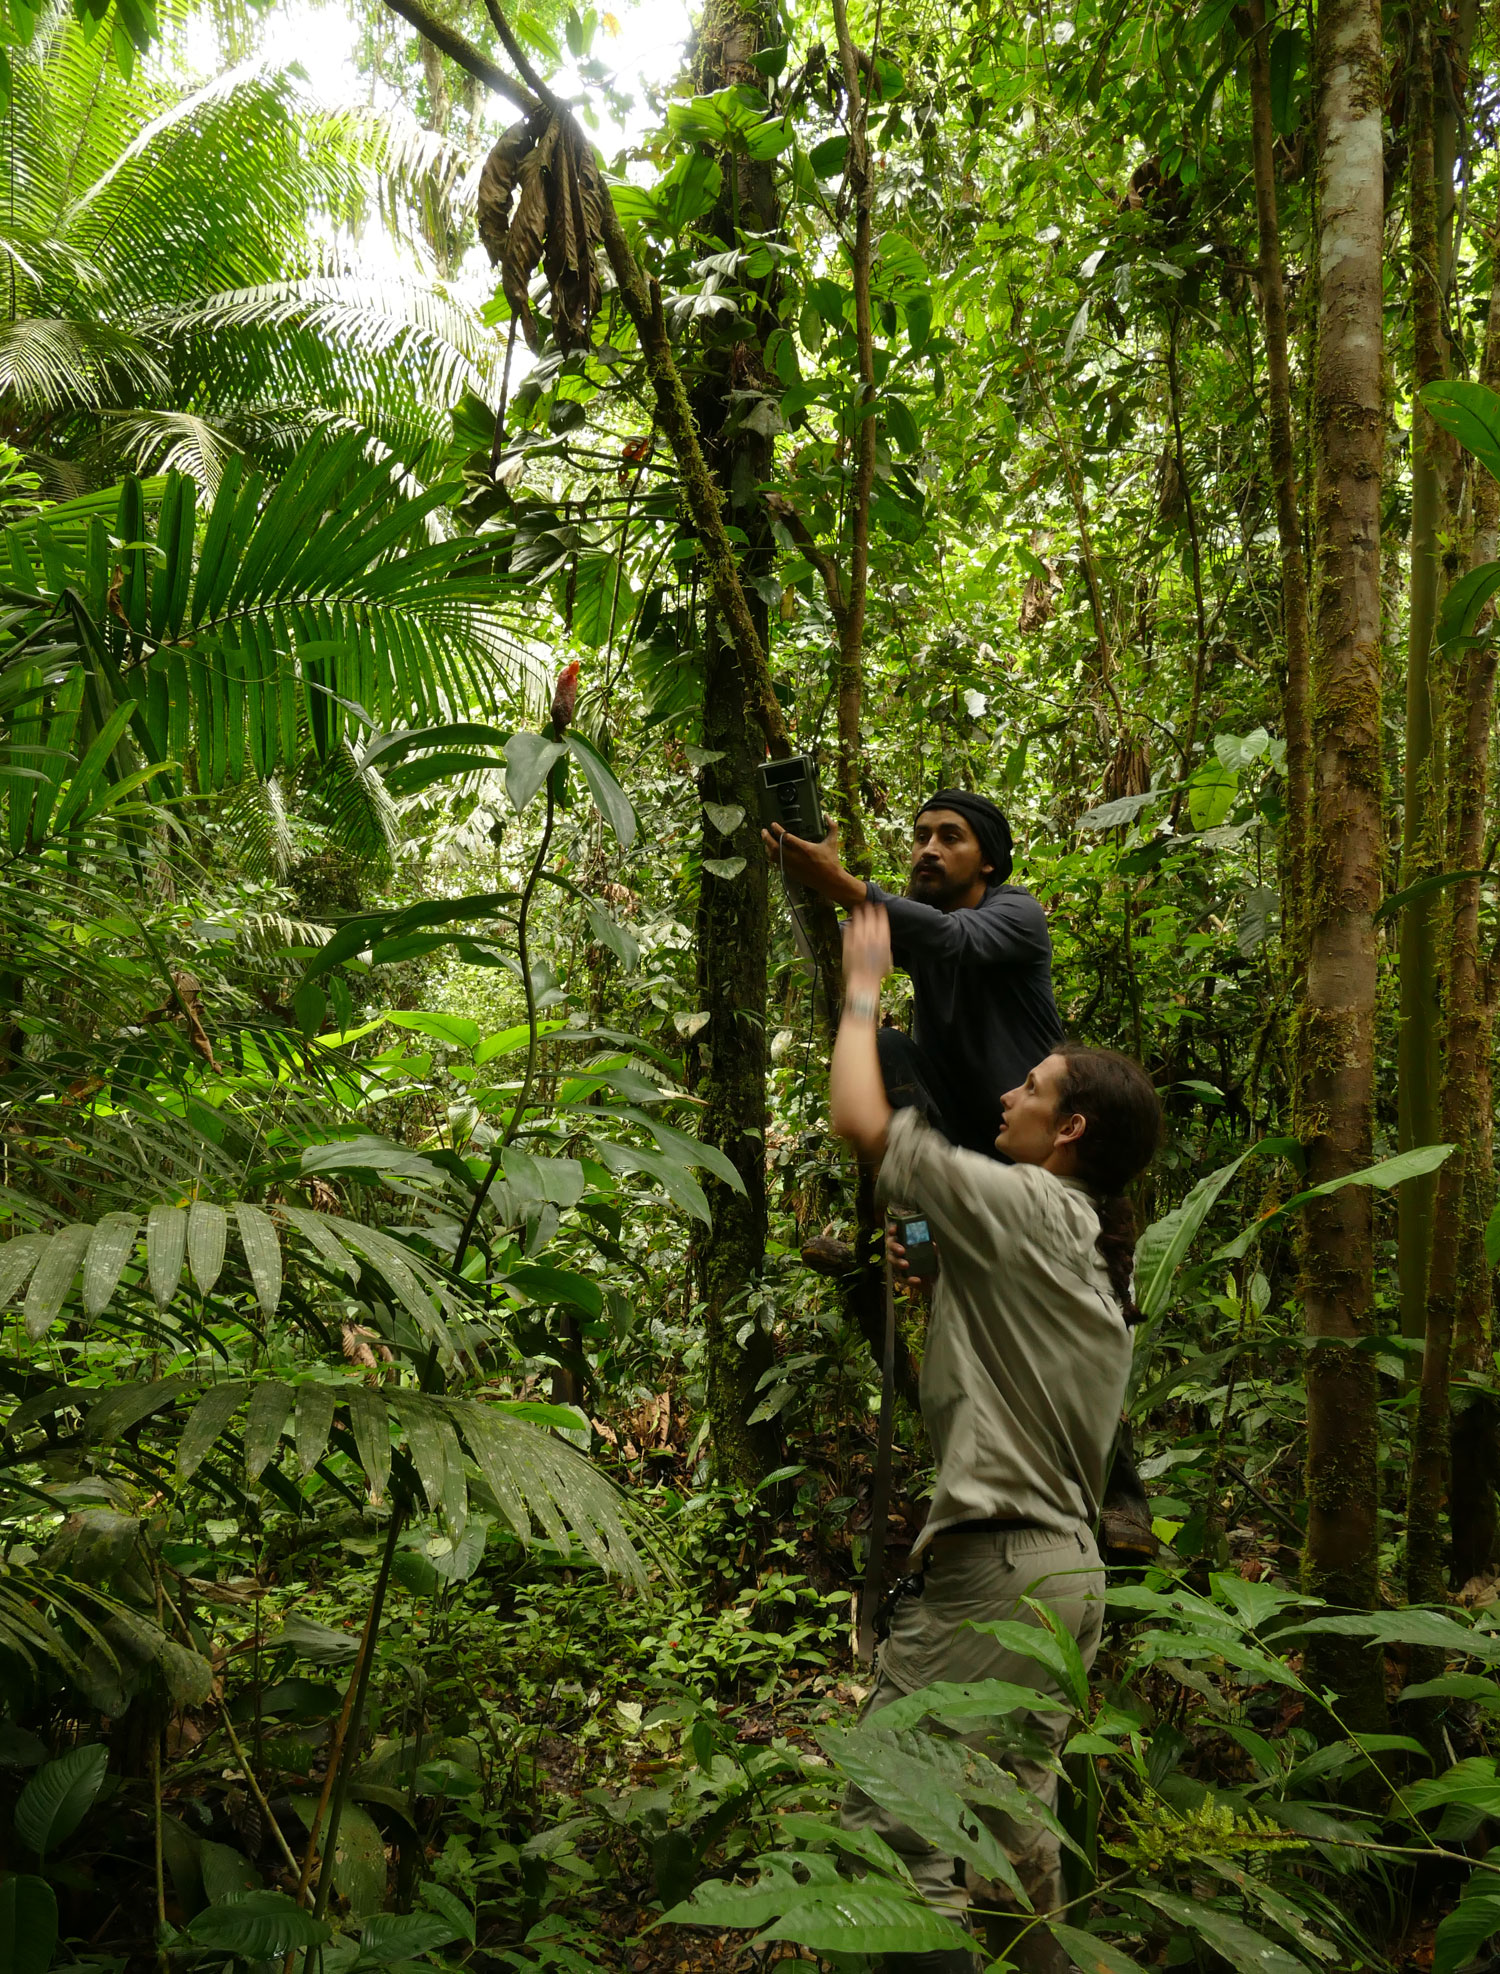 Rowan Schley collecting plant material in the Amazon rainforest